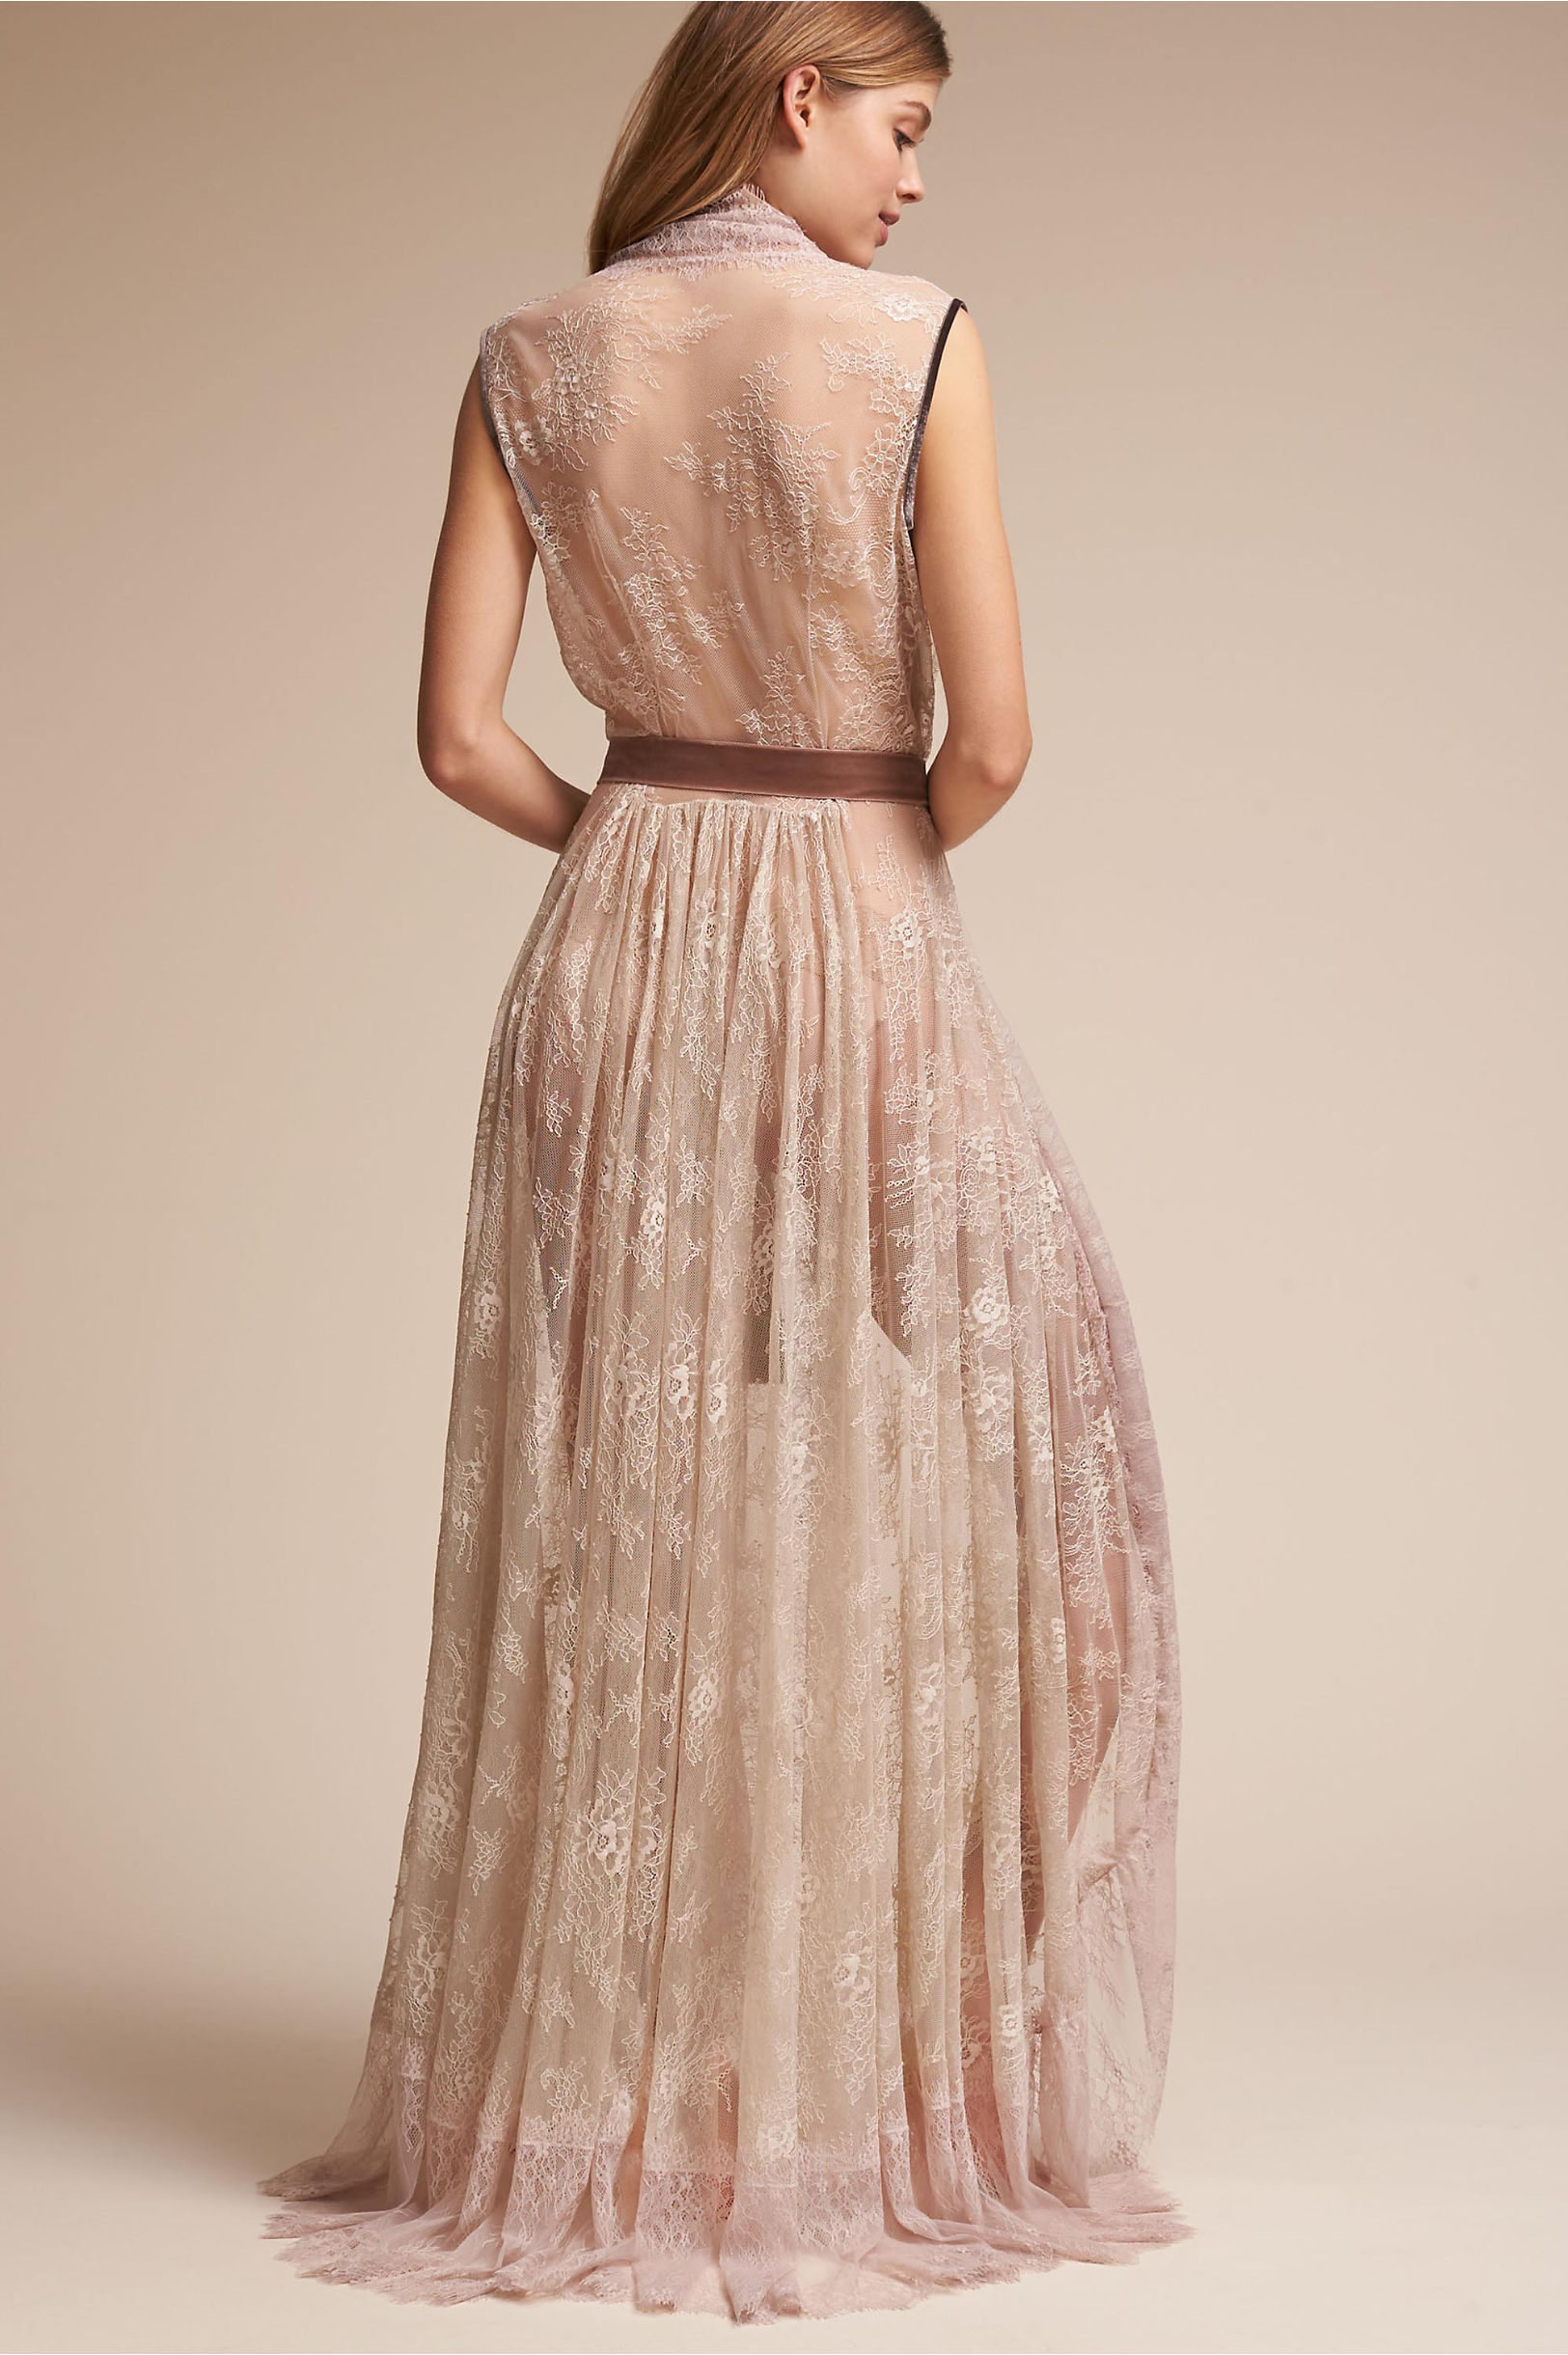 Sarita Lace Duster in Sale | BHLDN